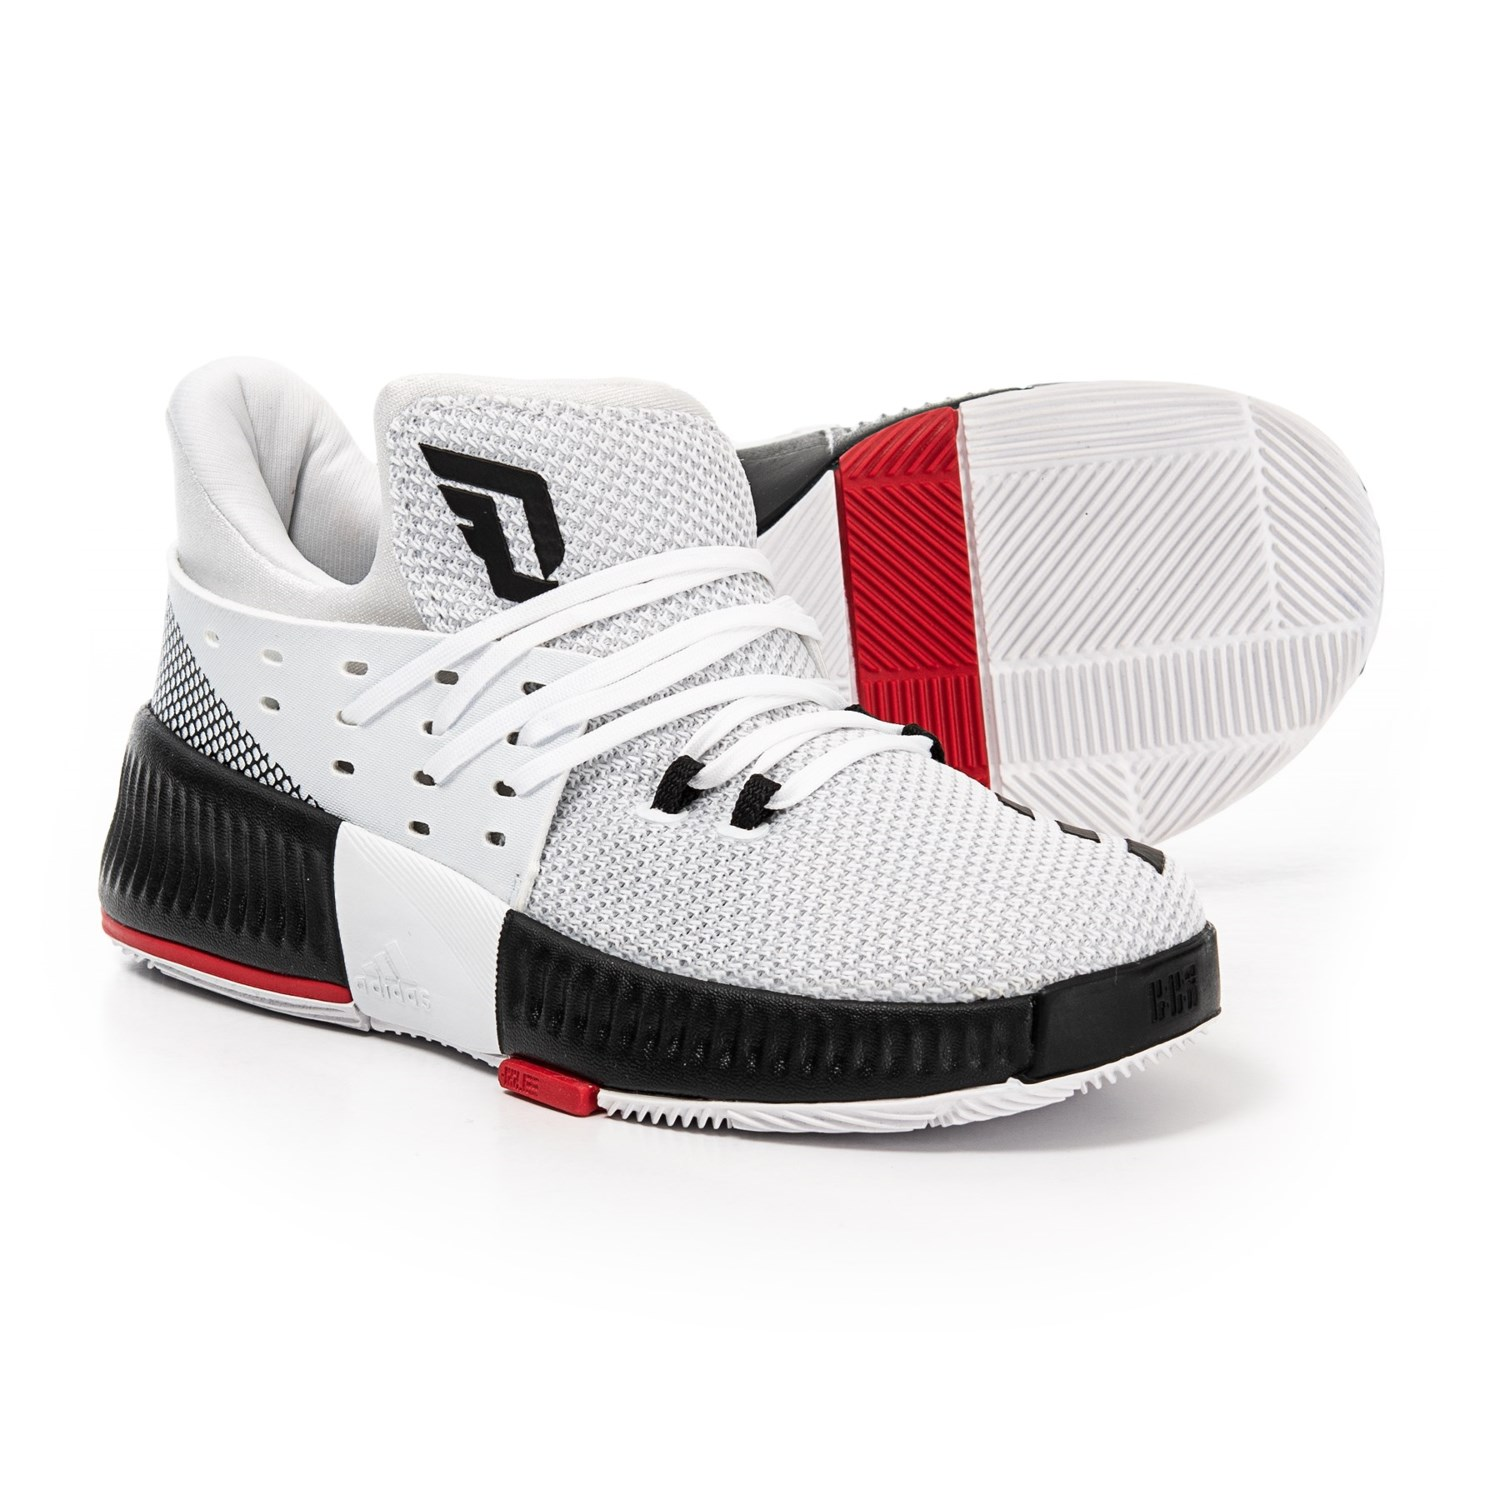 46f0d4f1435d adidas Damian Lillard 3 Basketball Shoes (For Little and Big Kids) in  Footwear White